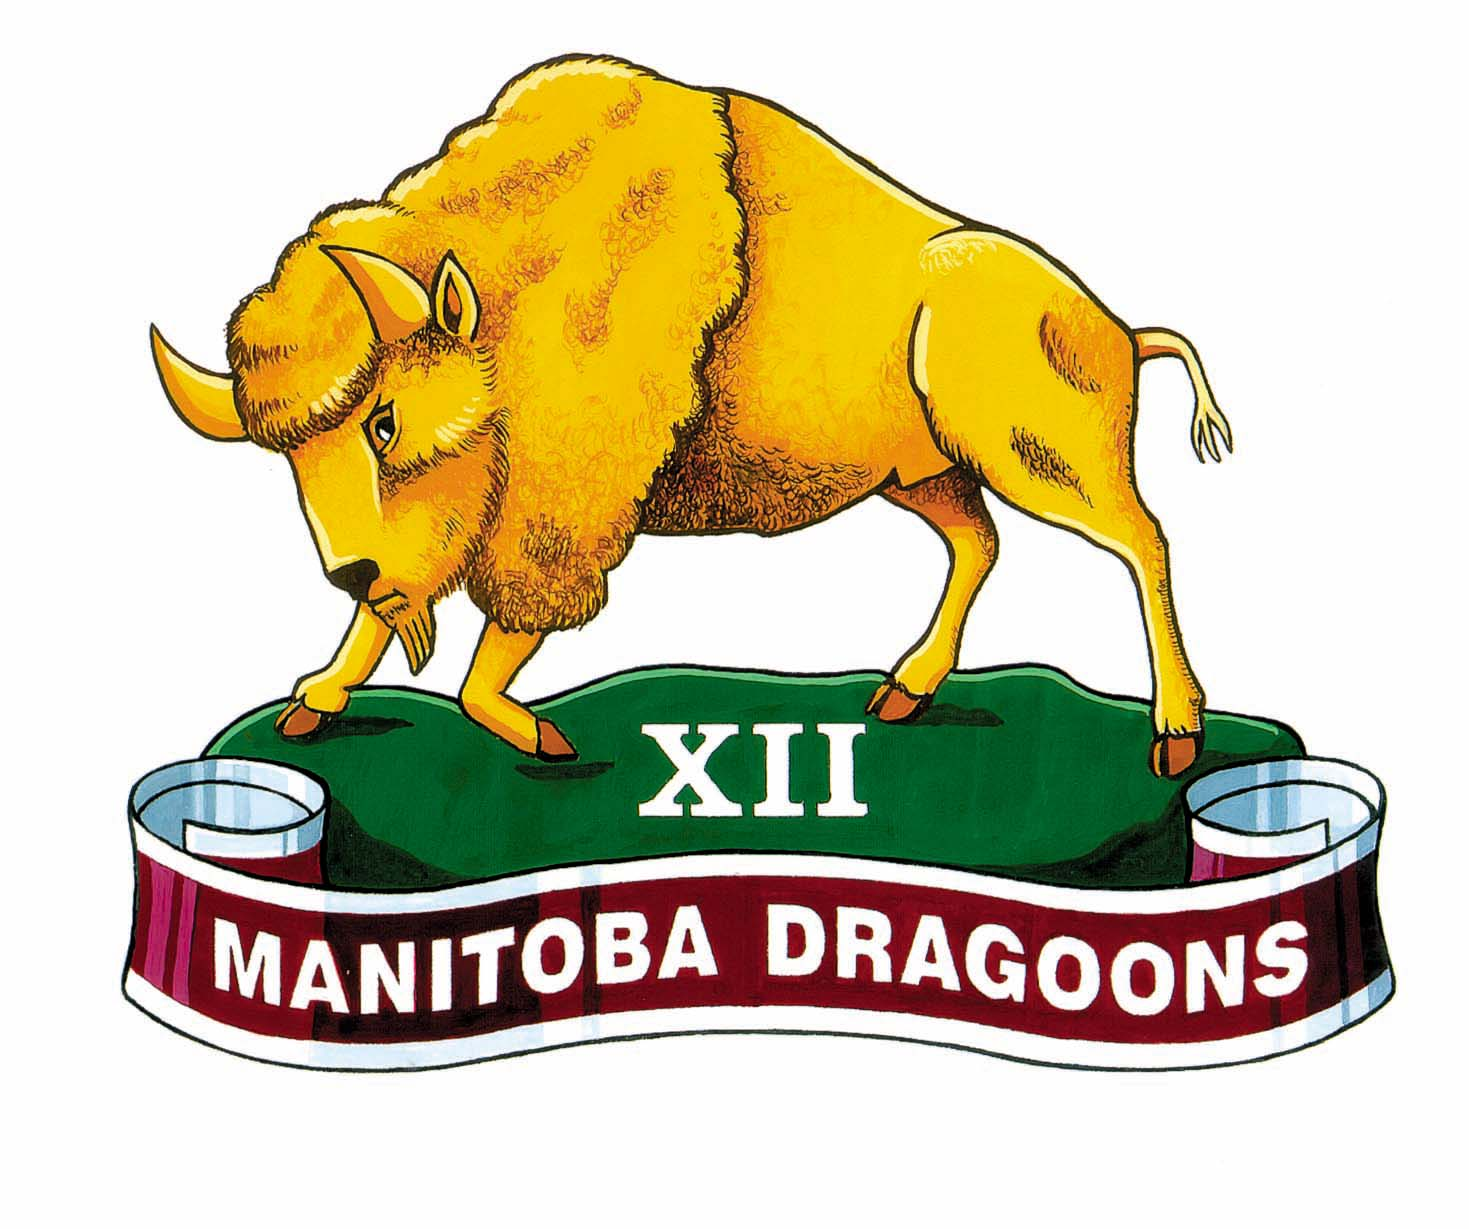 12TH MANITOBA DRAGOONS BADGE